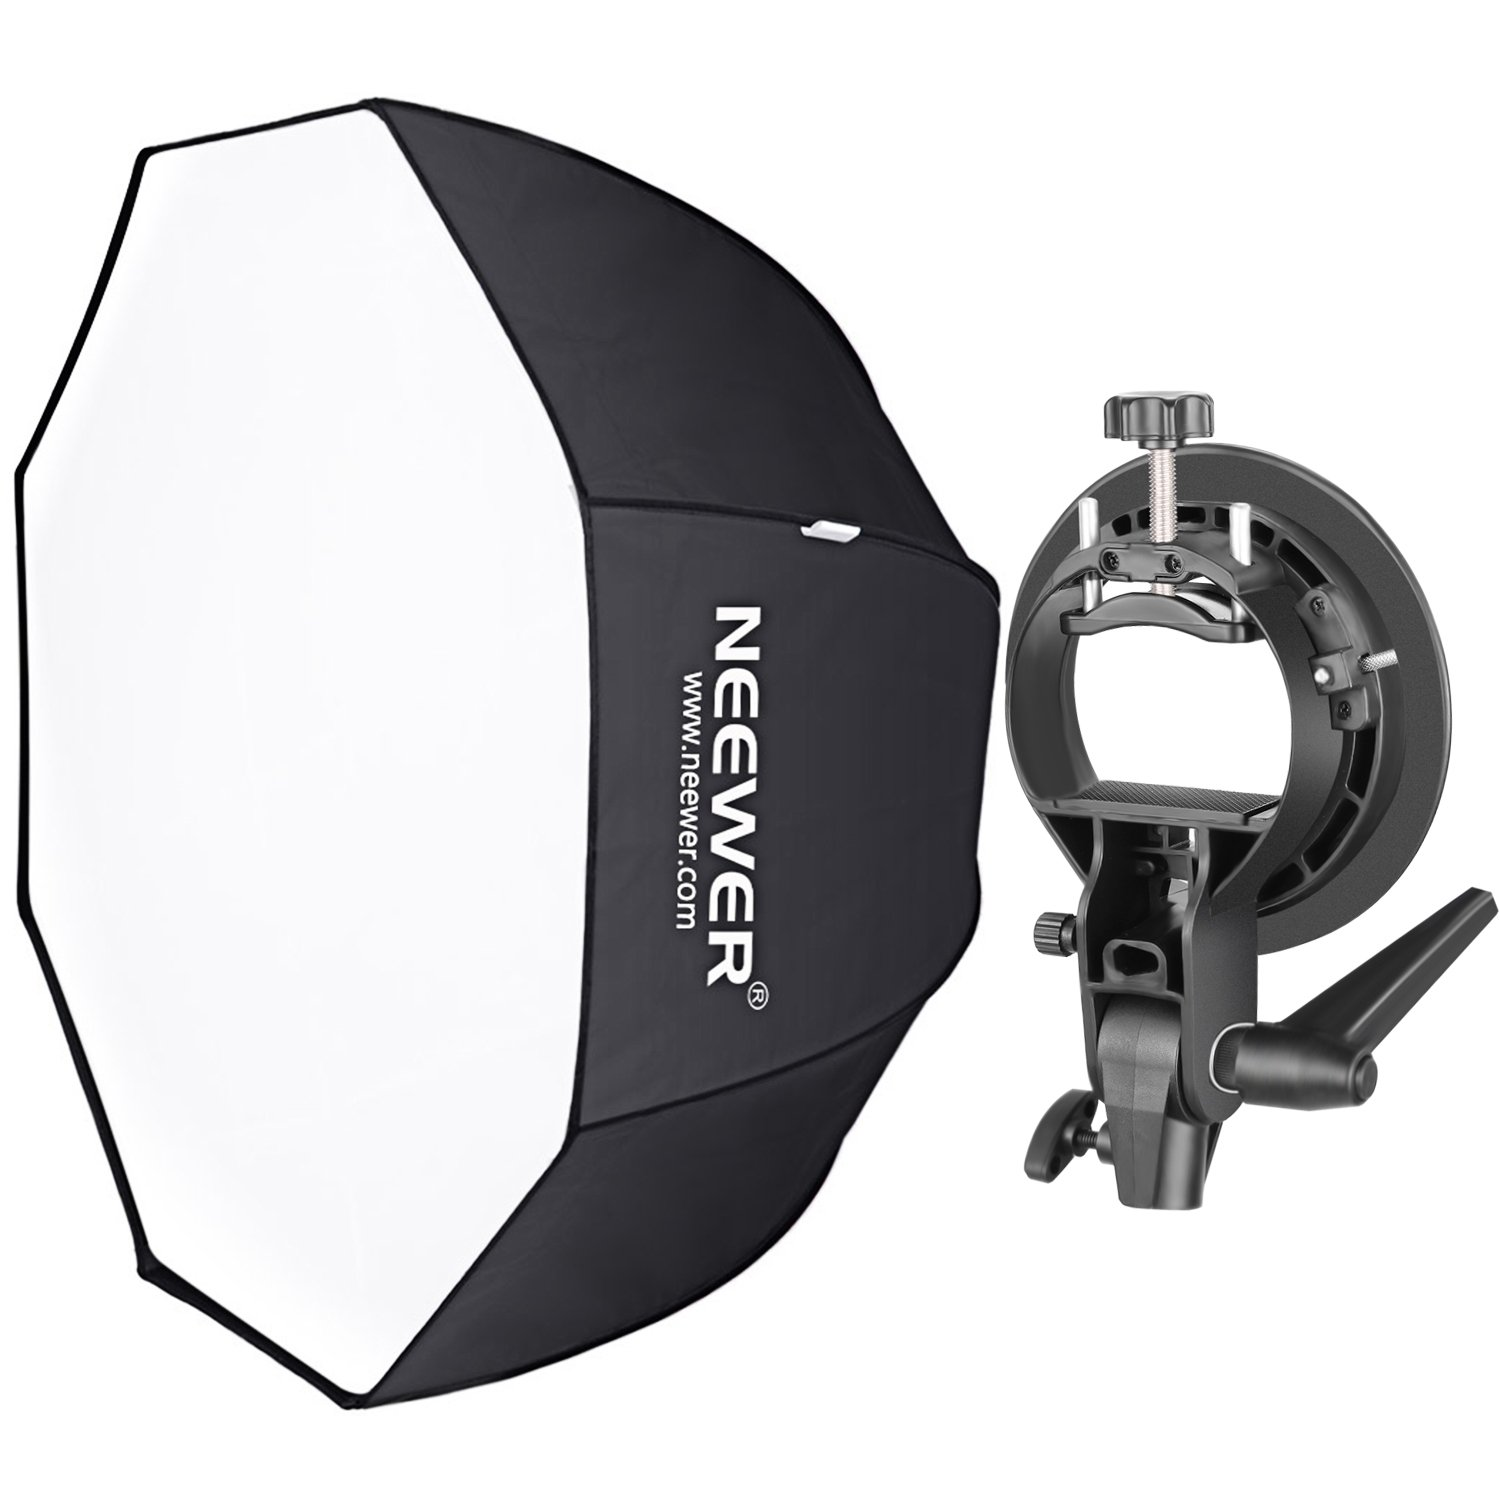 Neewer 32 inches/80 centimeters Octagonal Softbox with S-Type Bracket Holder (with Bowens Mount) and Carrying Bag for Speedlite Studio Flash Monolight, Portrait and Product Photography by Neewer